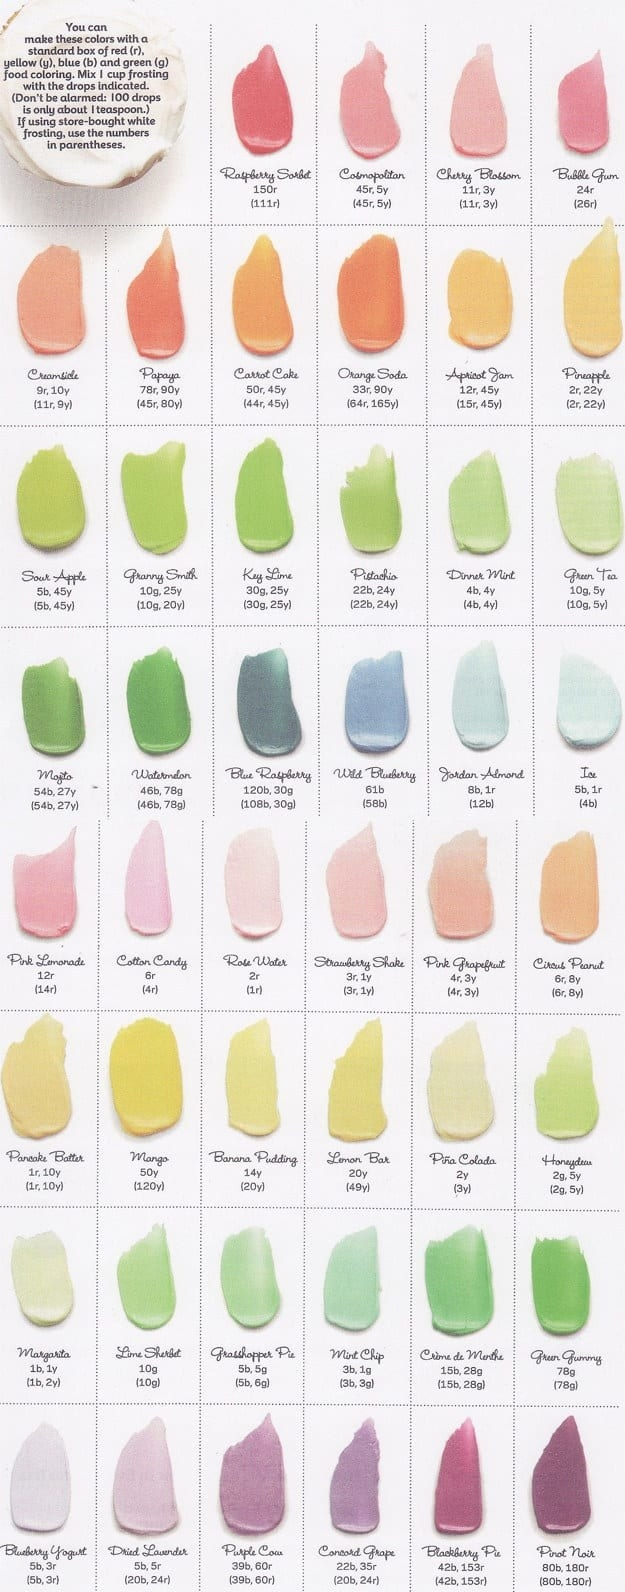 Or follow this chart turn buttercream literally any color your heart desires, using your regular old RYBG food coloring.